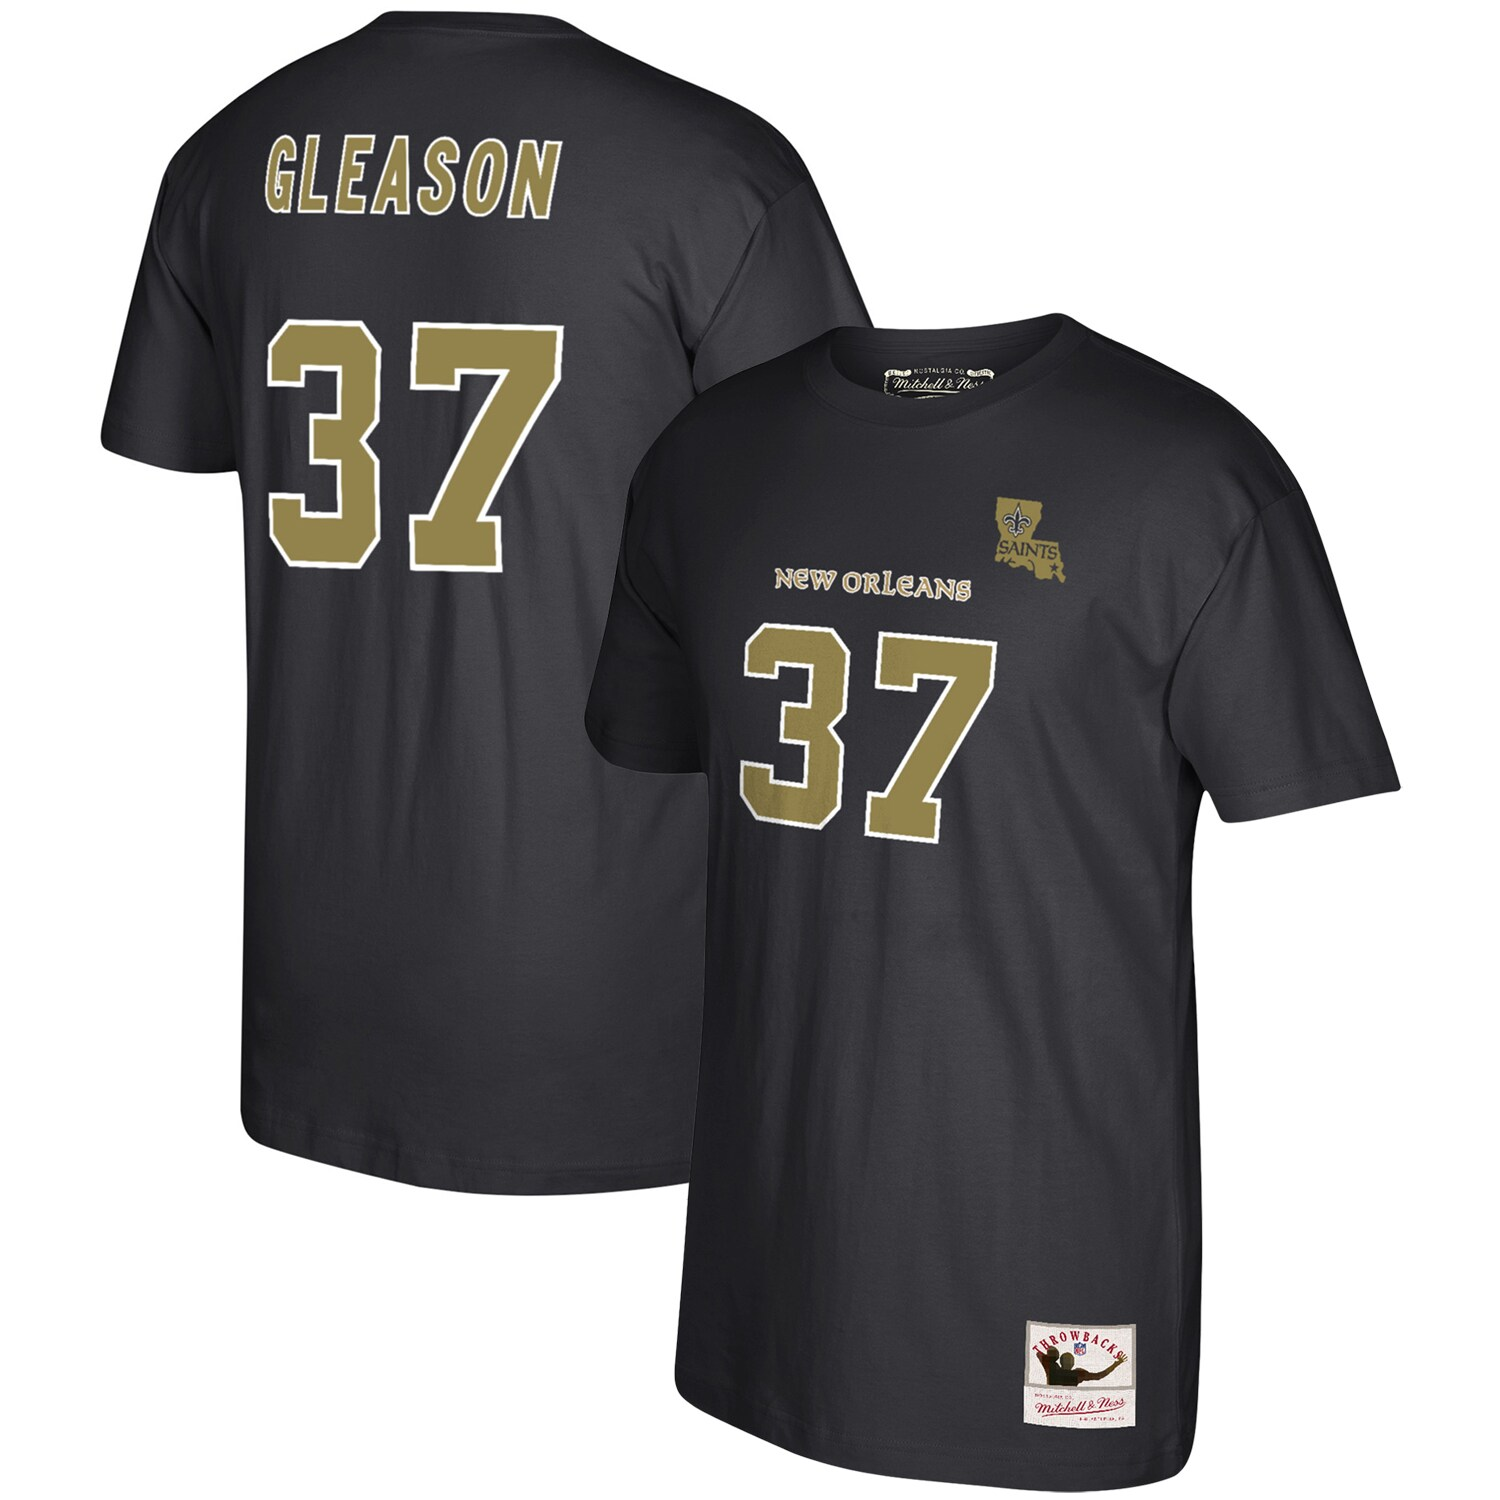 Steve Gleason New Orleans Saints Mitchell & Ness 2006 Retired Player Name & Number T-Shirt - Black